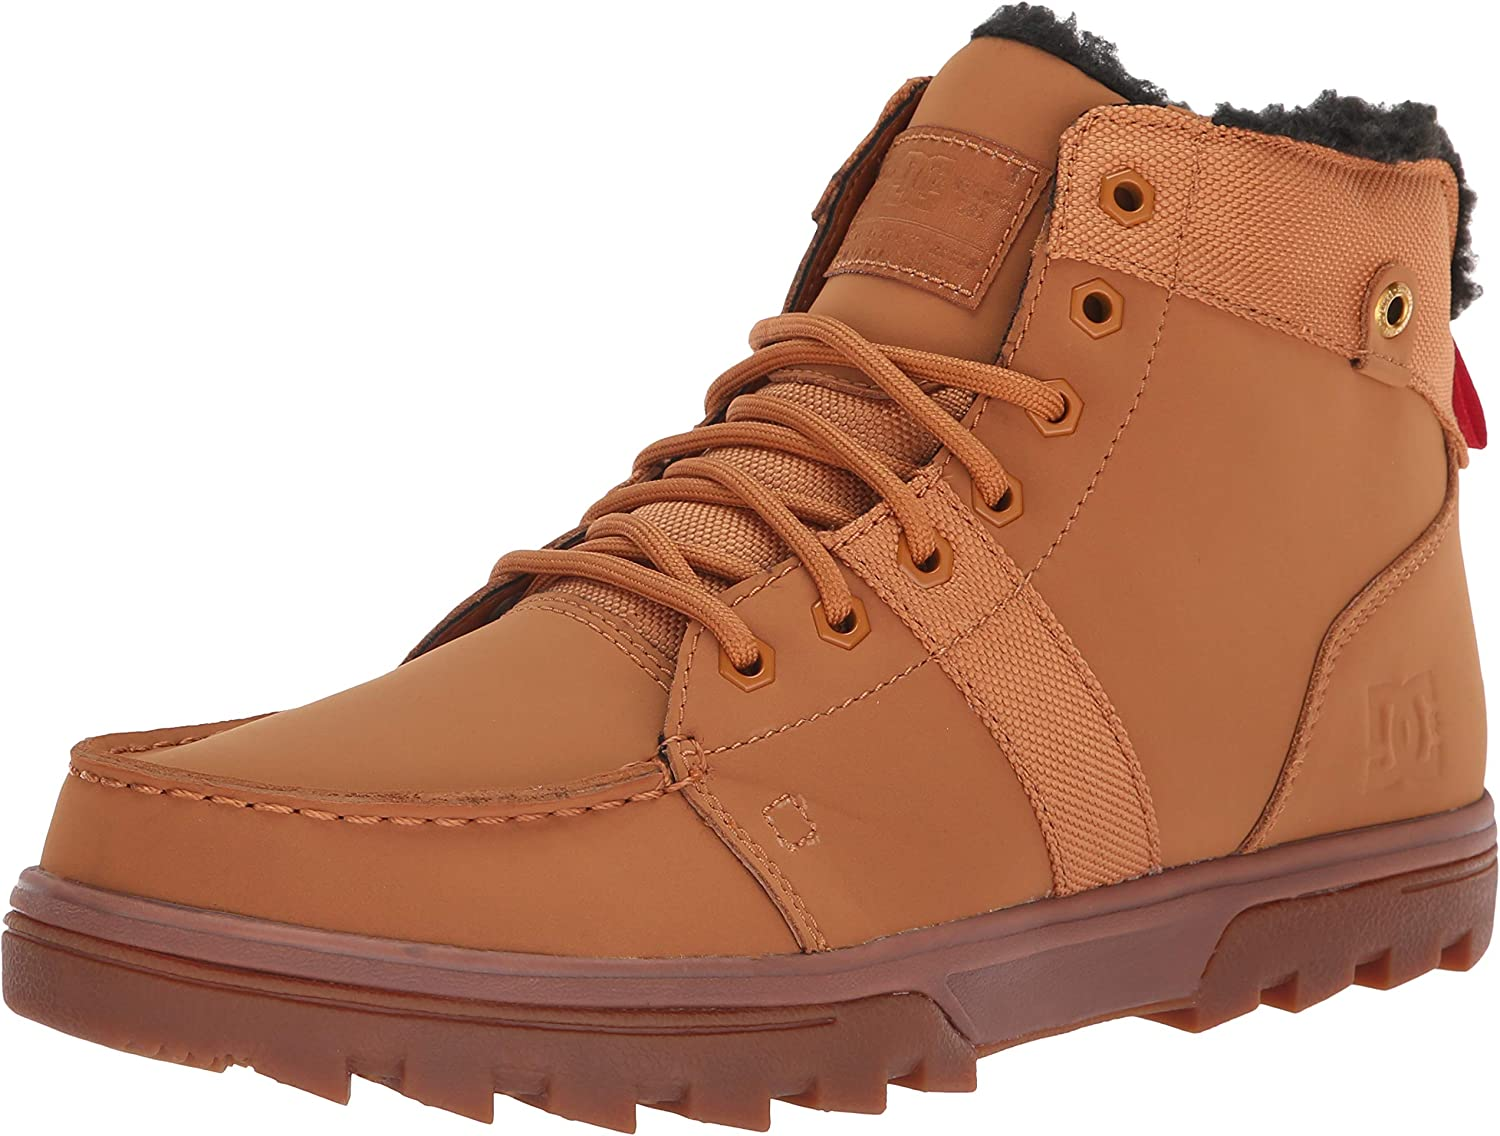 DC DC303241 - Foresta Uomo, Marronee (Wheat nero), 39.5 EU